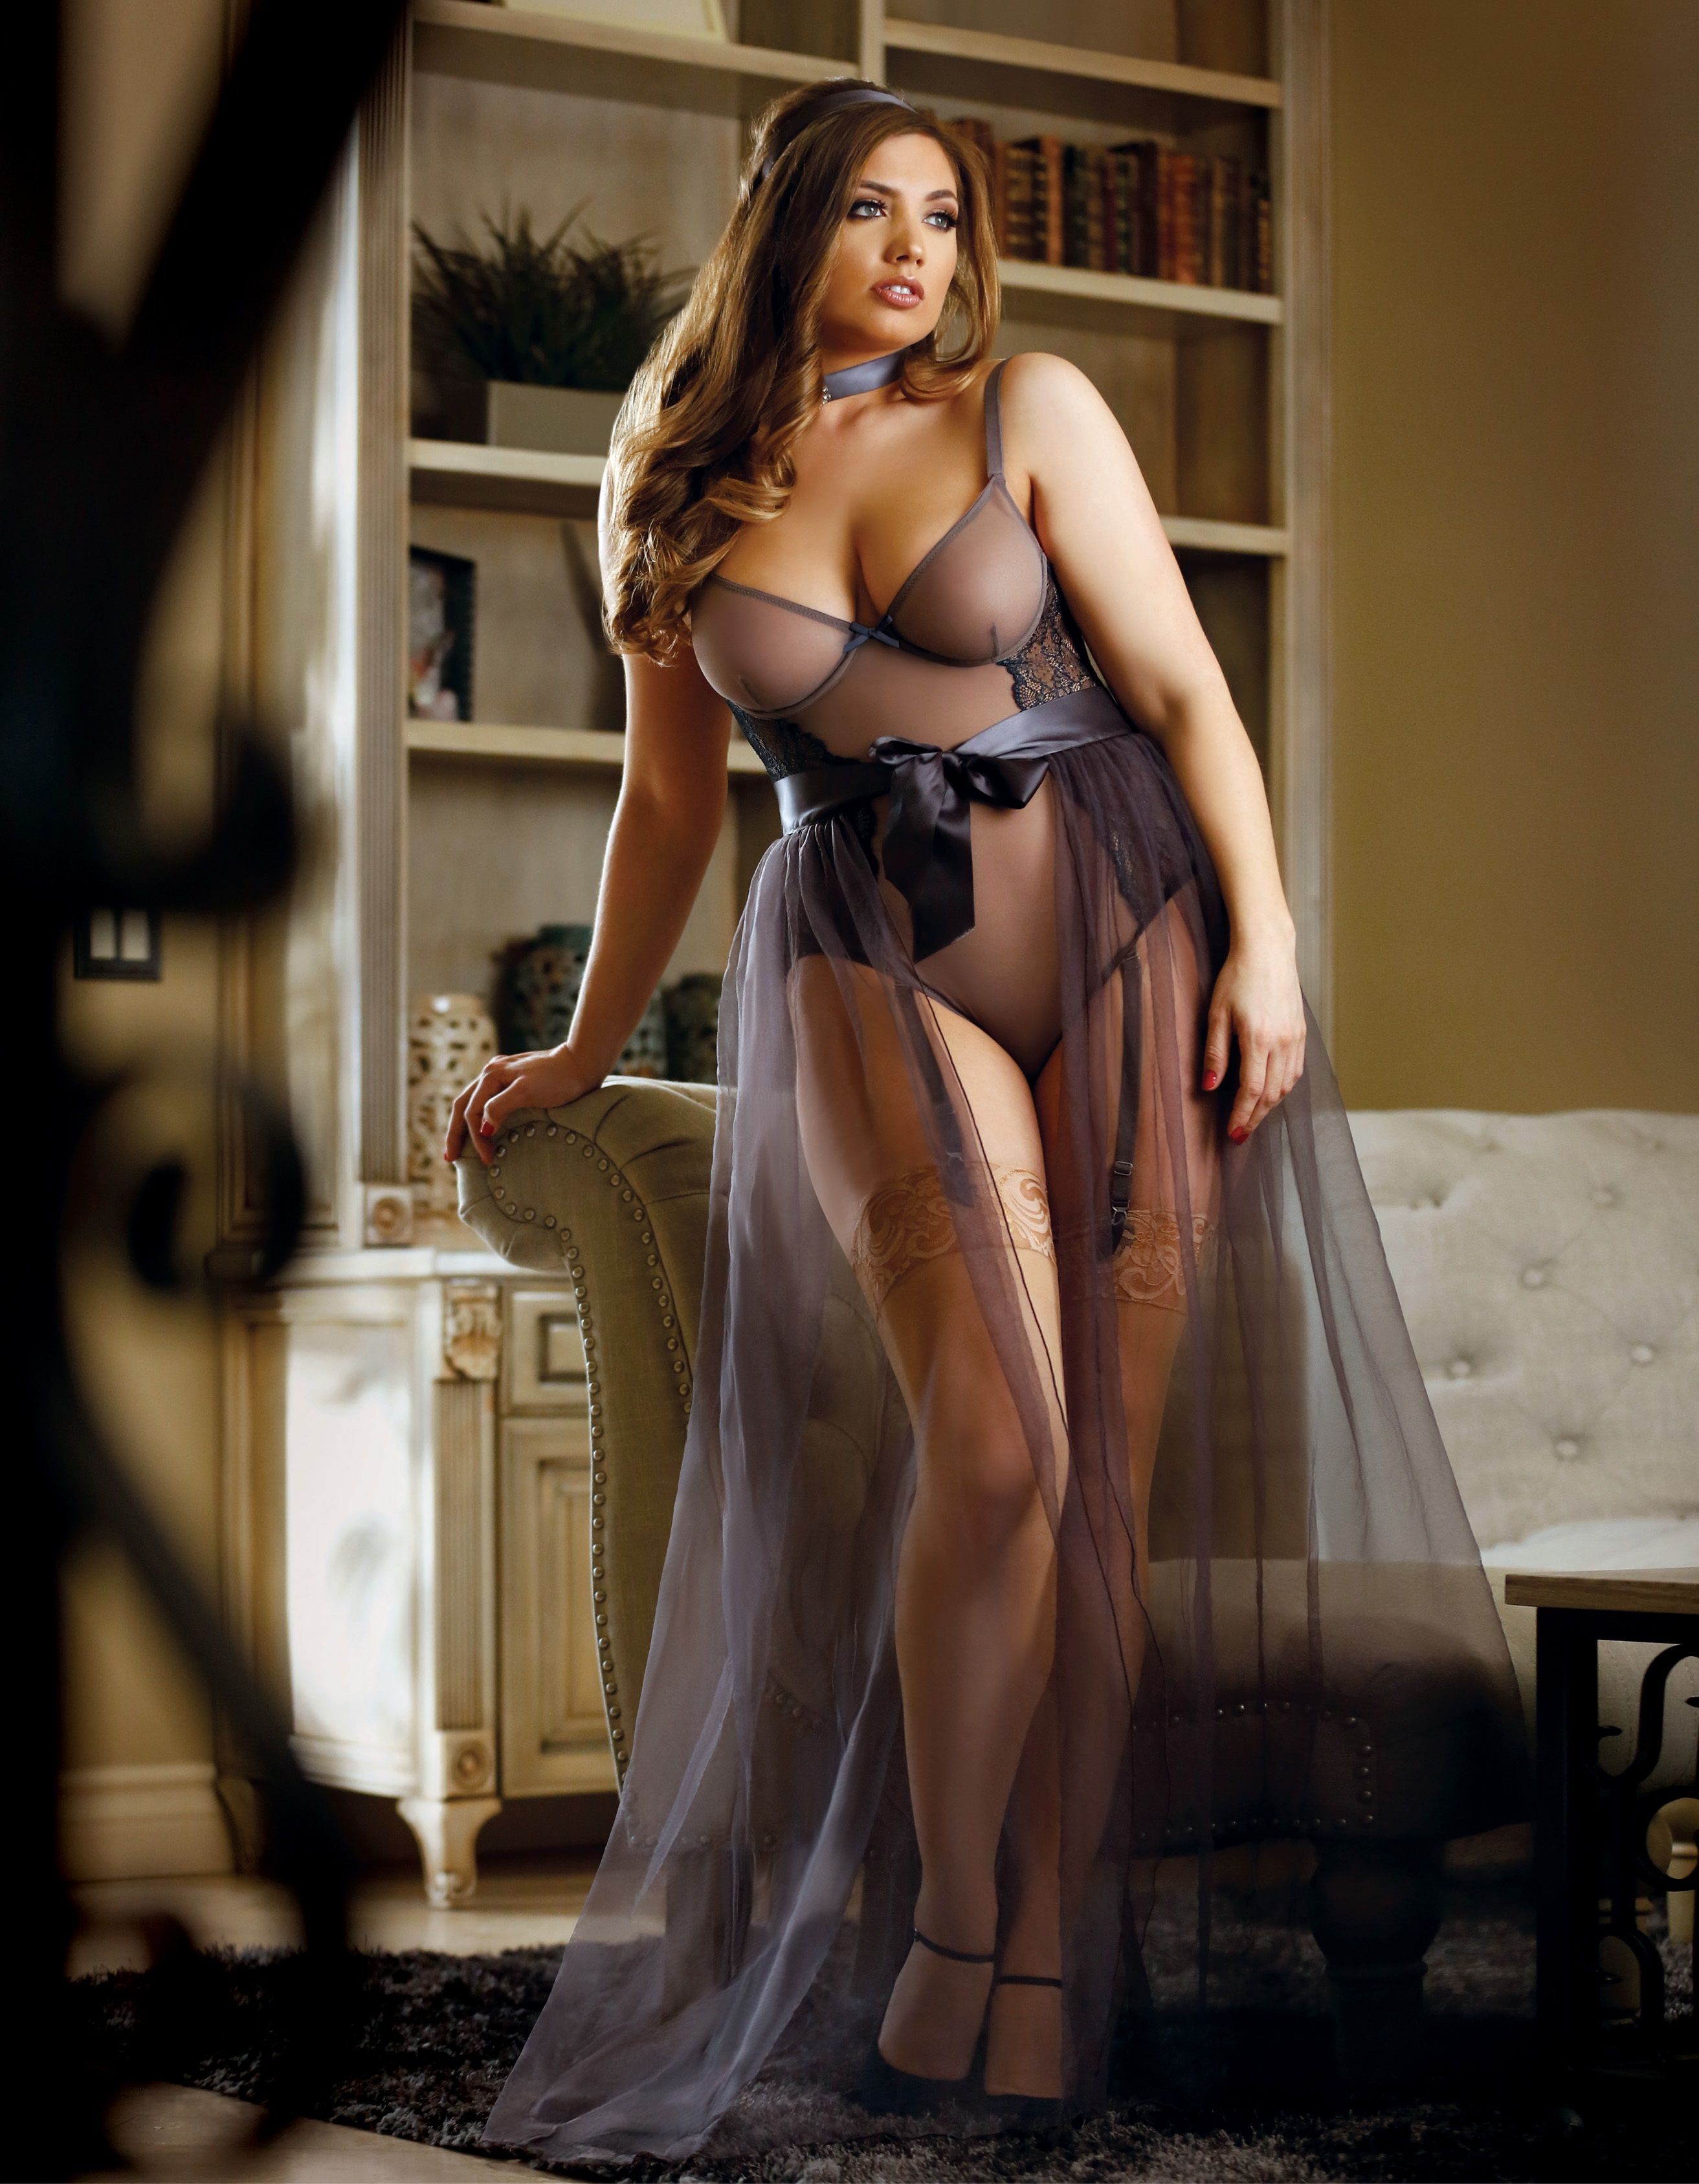 474584aeb3a Nicole Teddy with Garters. Nicole Teddy with Garters Plus Size Model